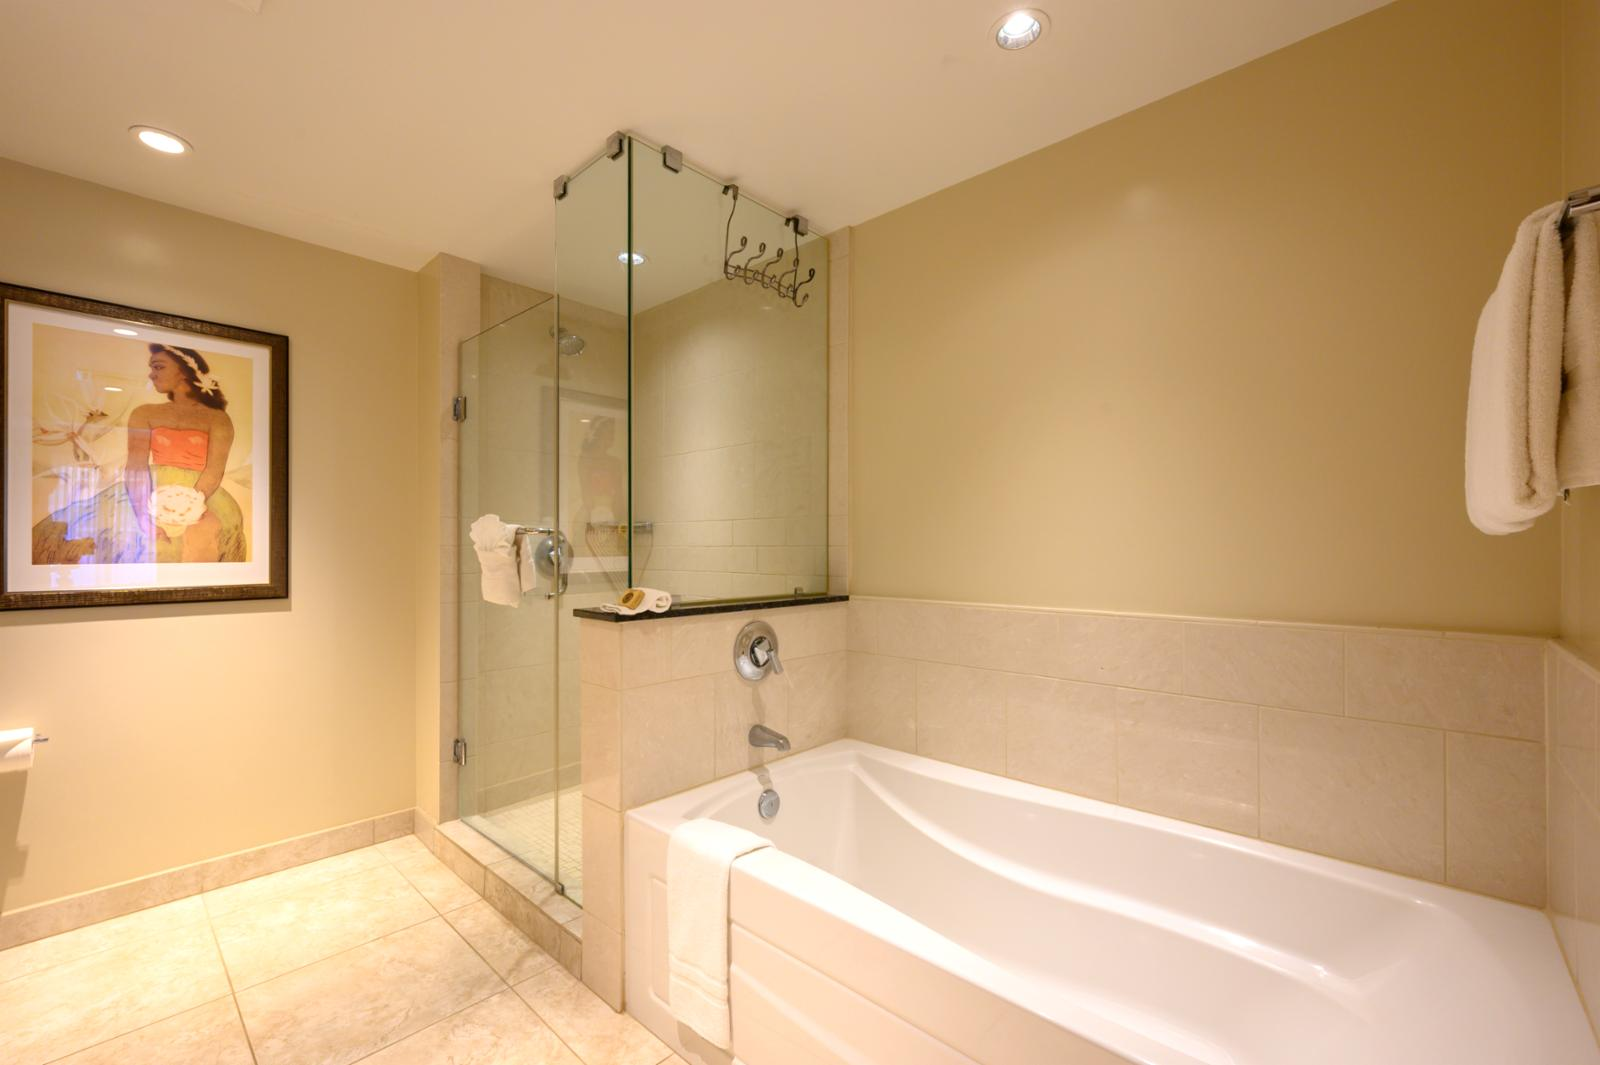 Large bathtub and separate glassed in shower